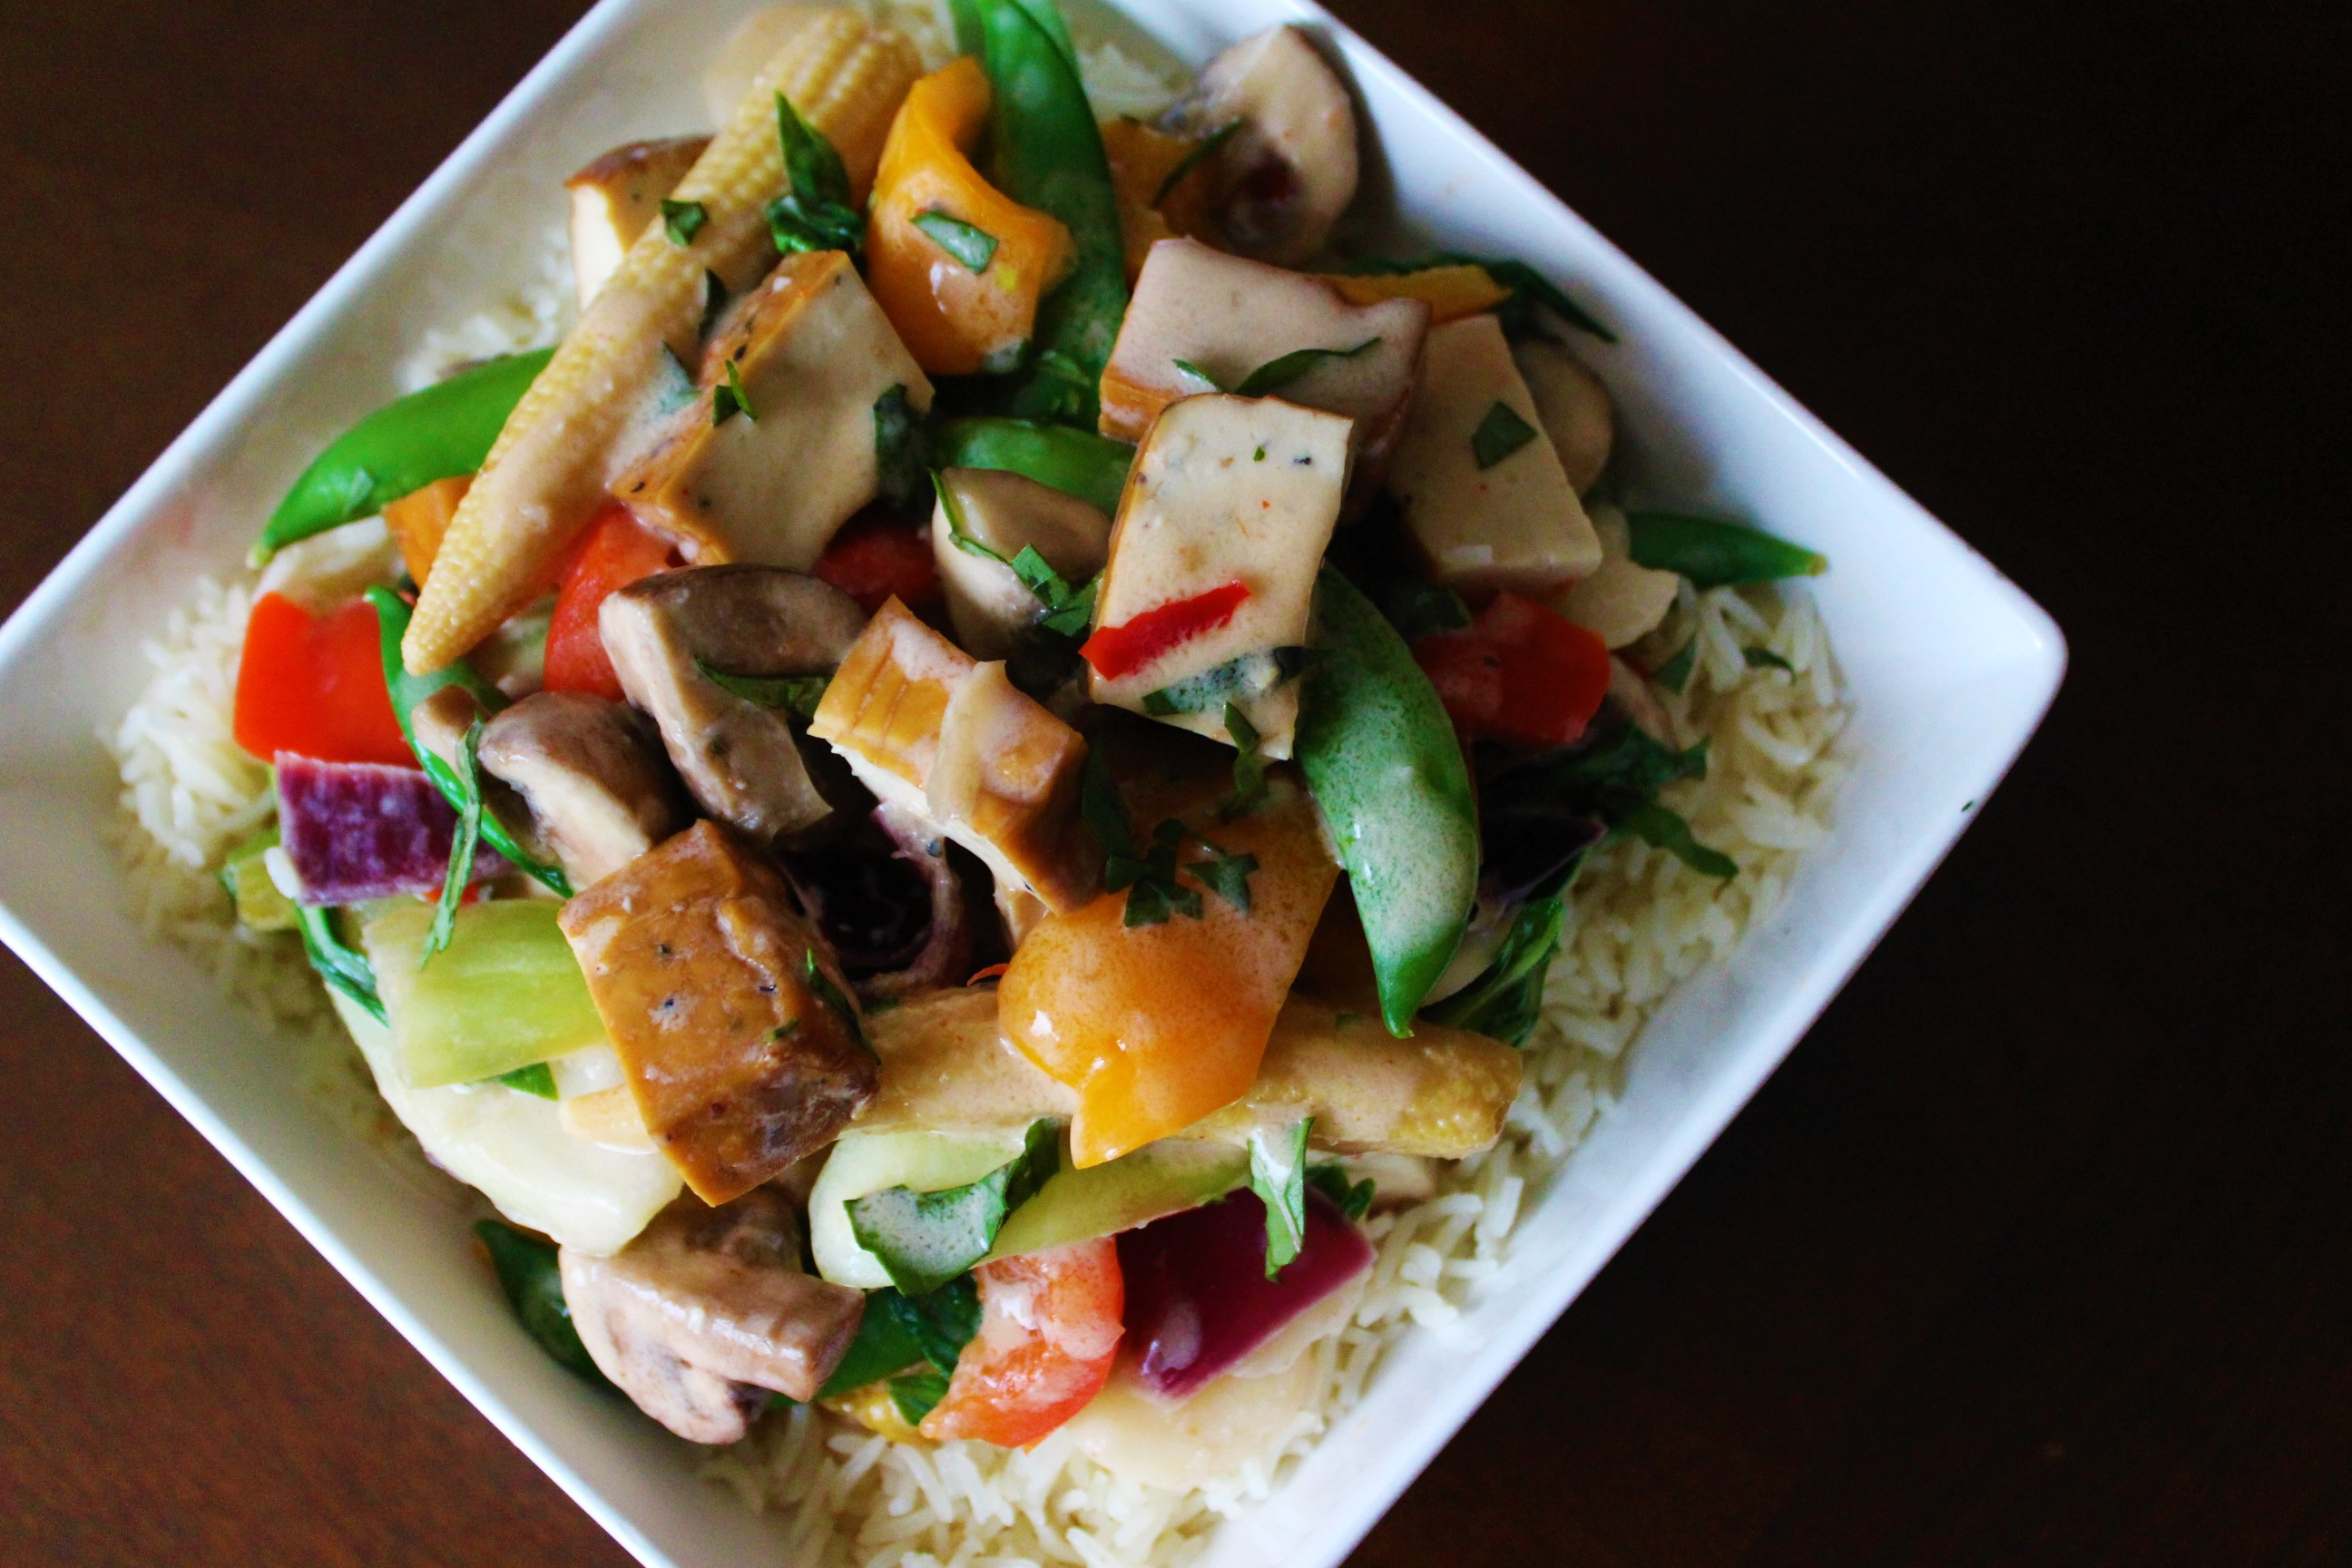 Thai Coconut Stir-fry with Tofu